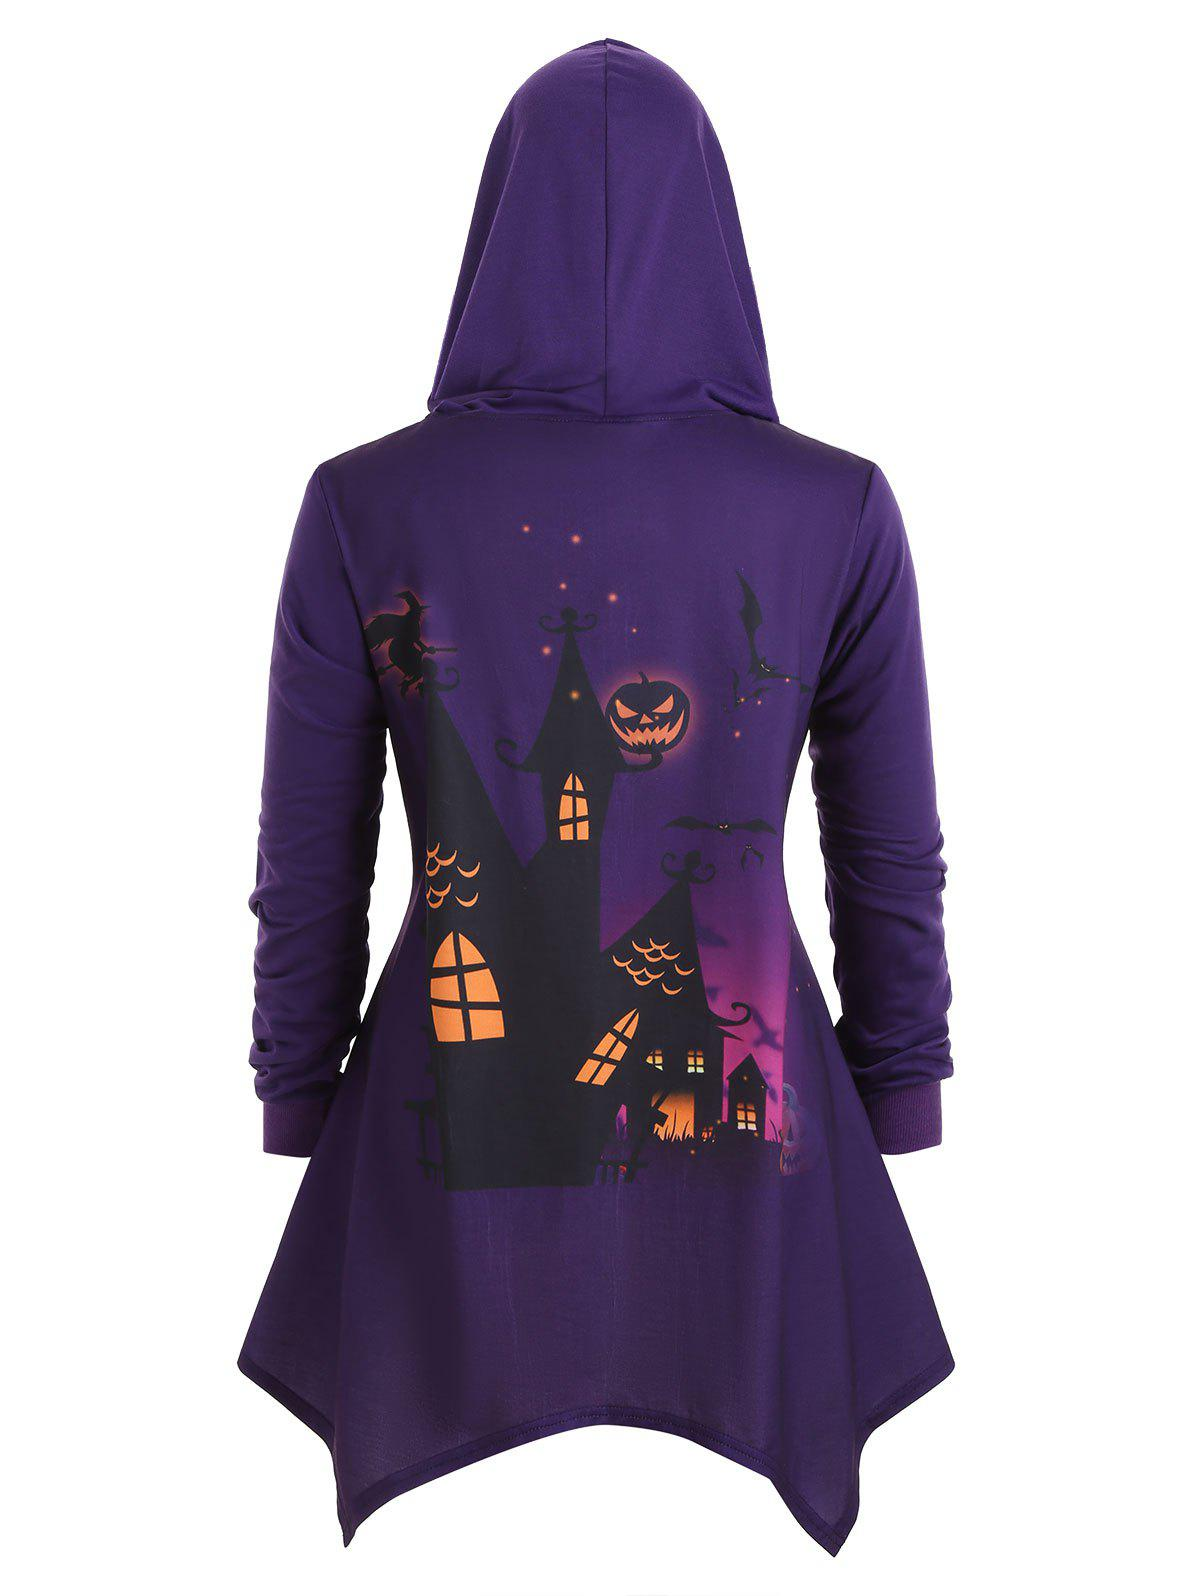 Hooded Bat Pumpkin Print Plus Size Asymmetrical Halloween Coat - PURPLE IRIS 5X